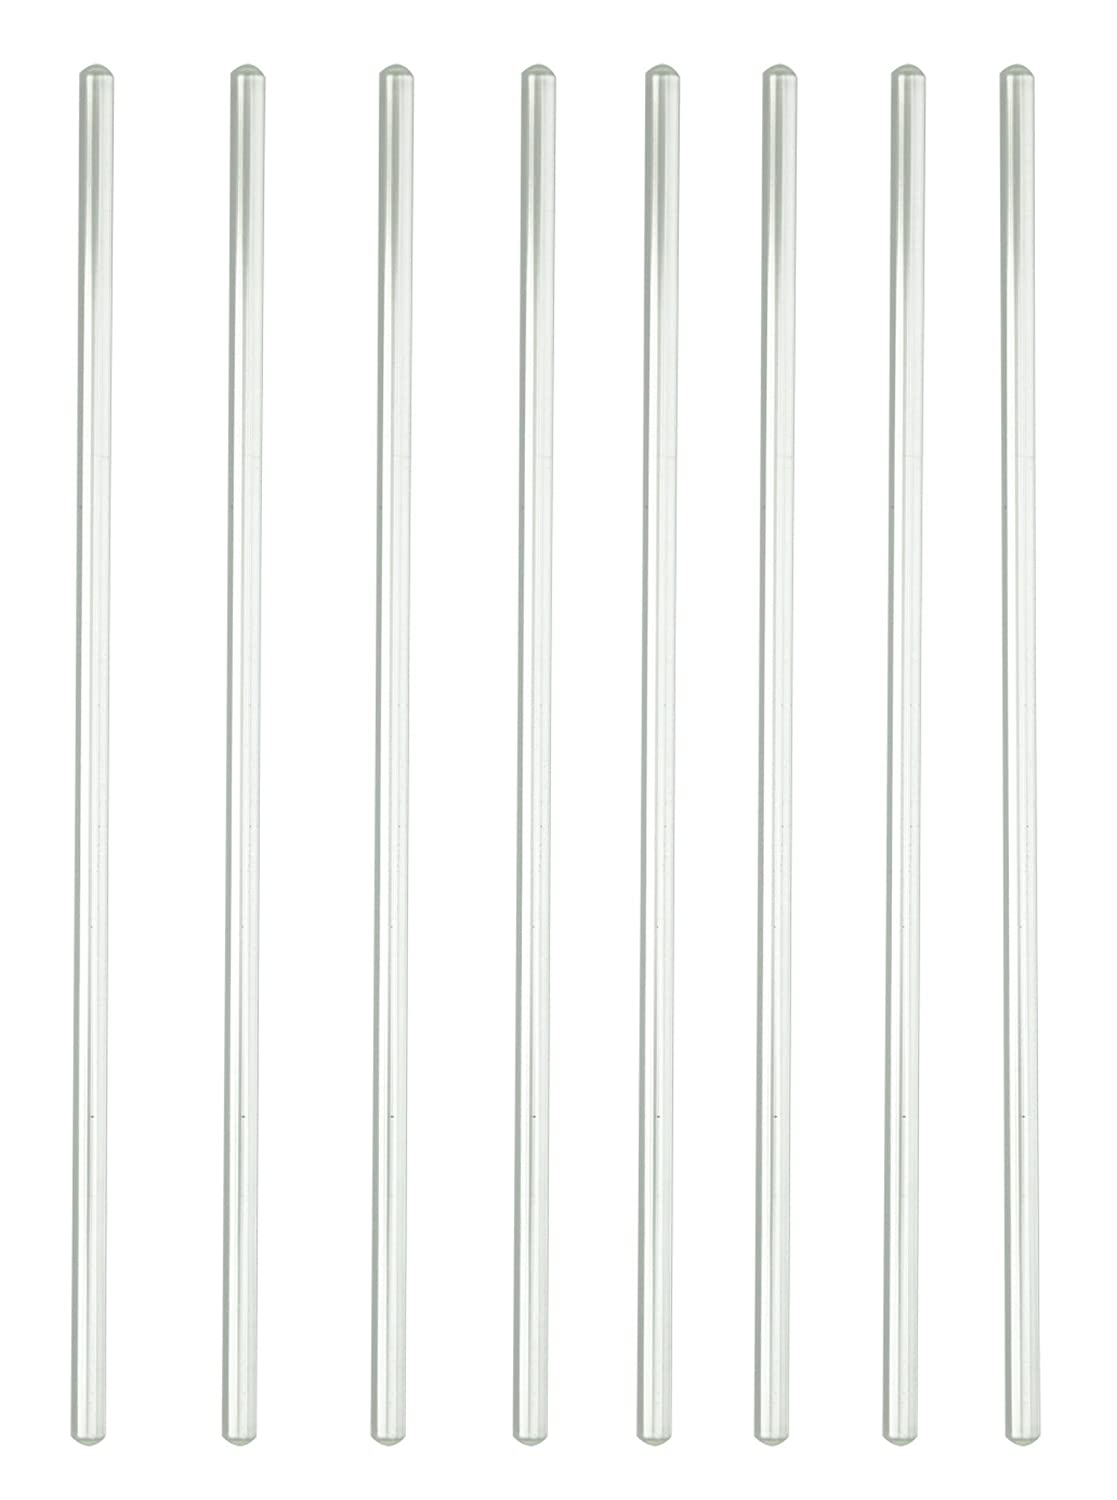 Burry Life Science Stick 12' Length Glass Stir Rod with Both Ends Round 8pcs/pk Lab